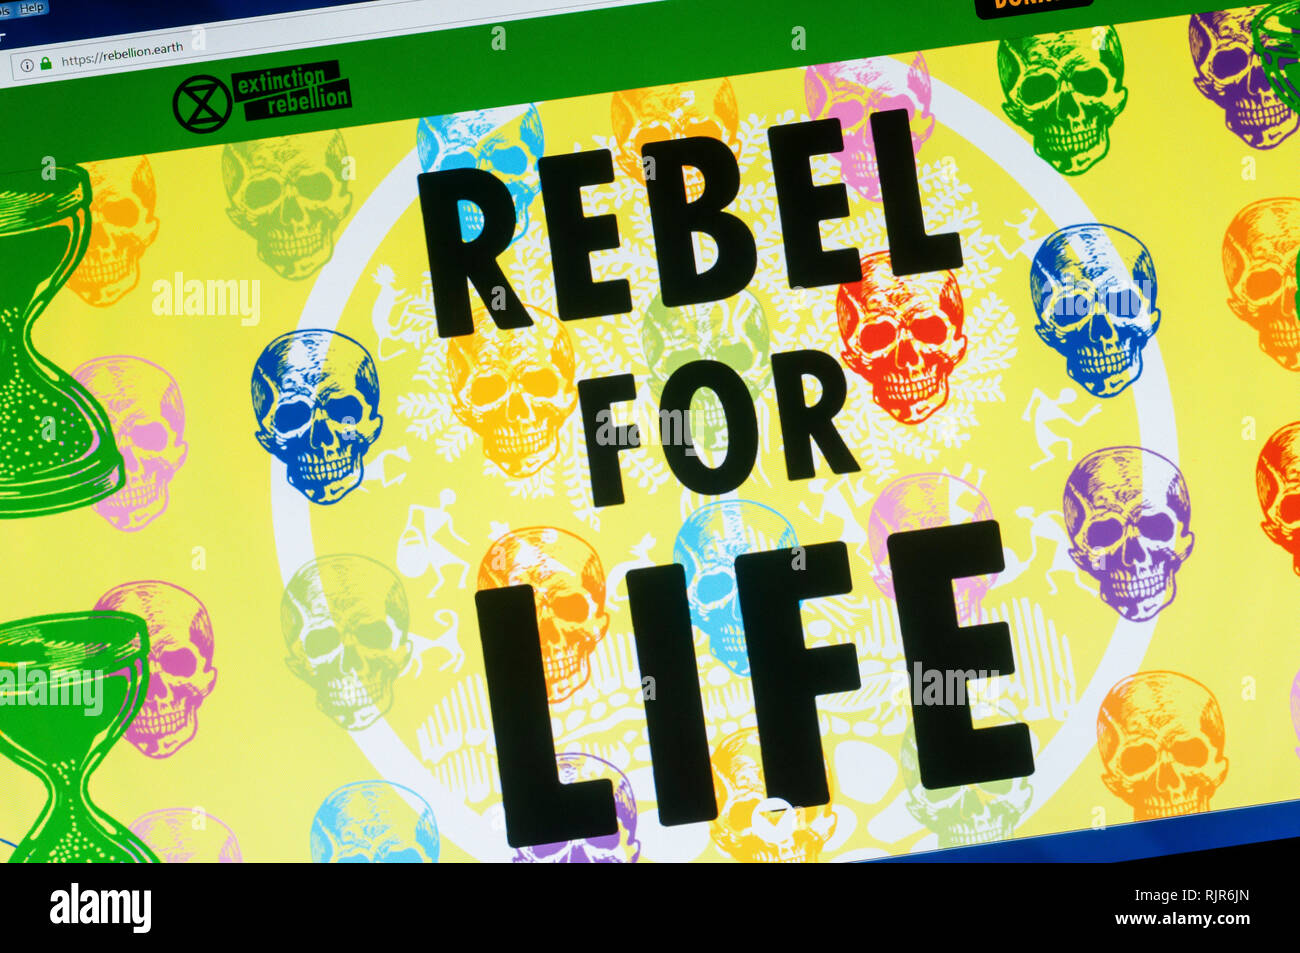 Home page of the website of Extinction Rebellion the international social movement protesting about climate change. - Stock Image